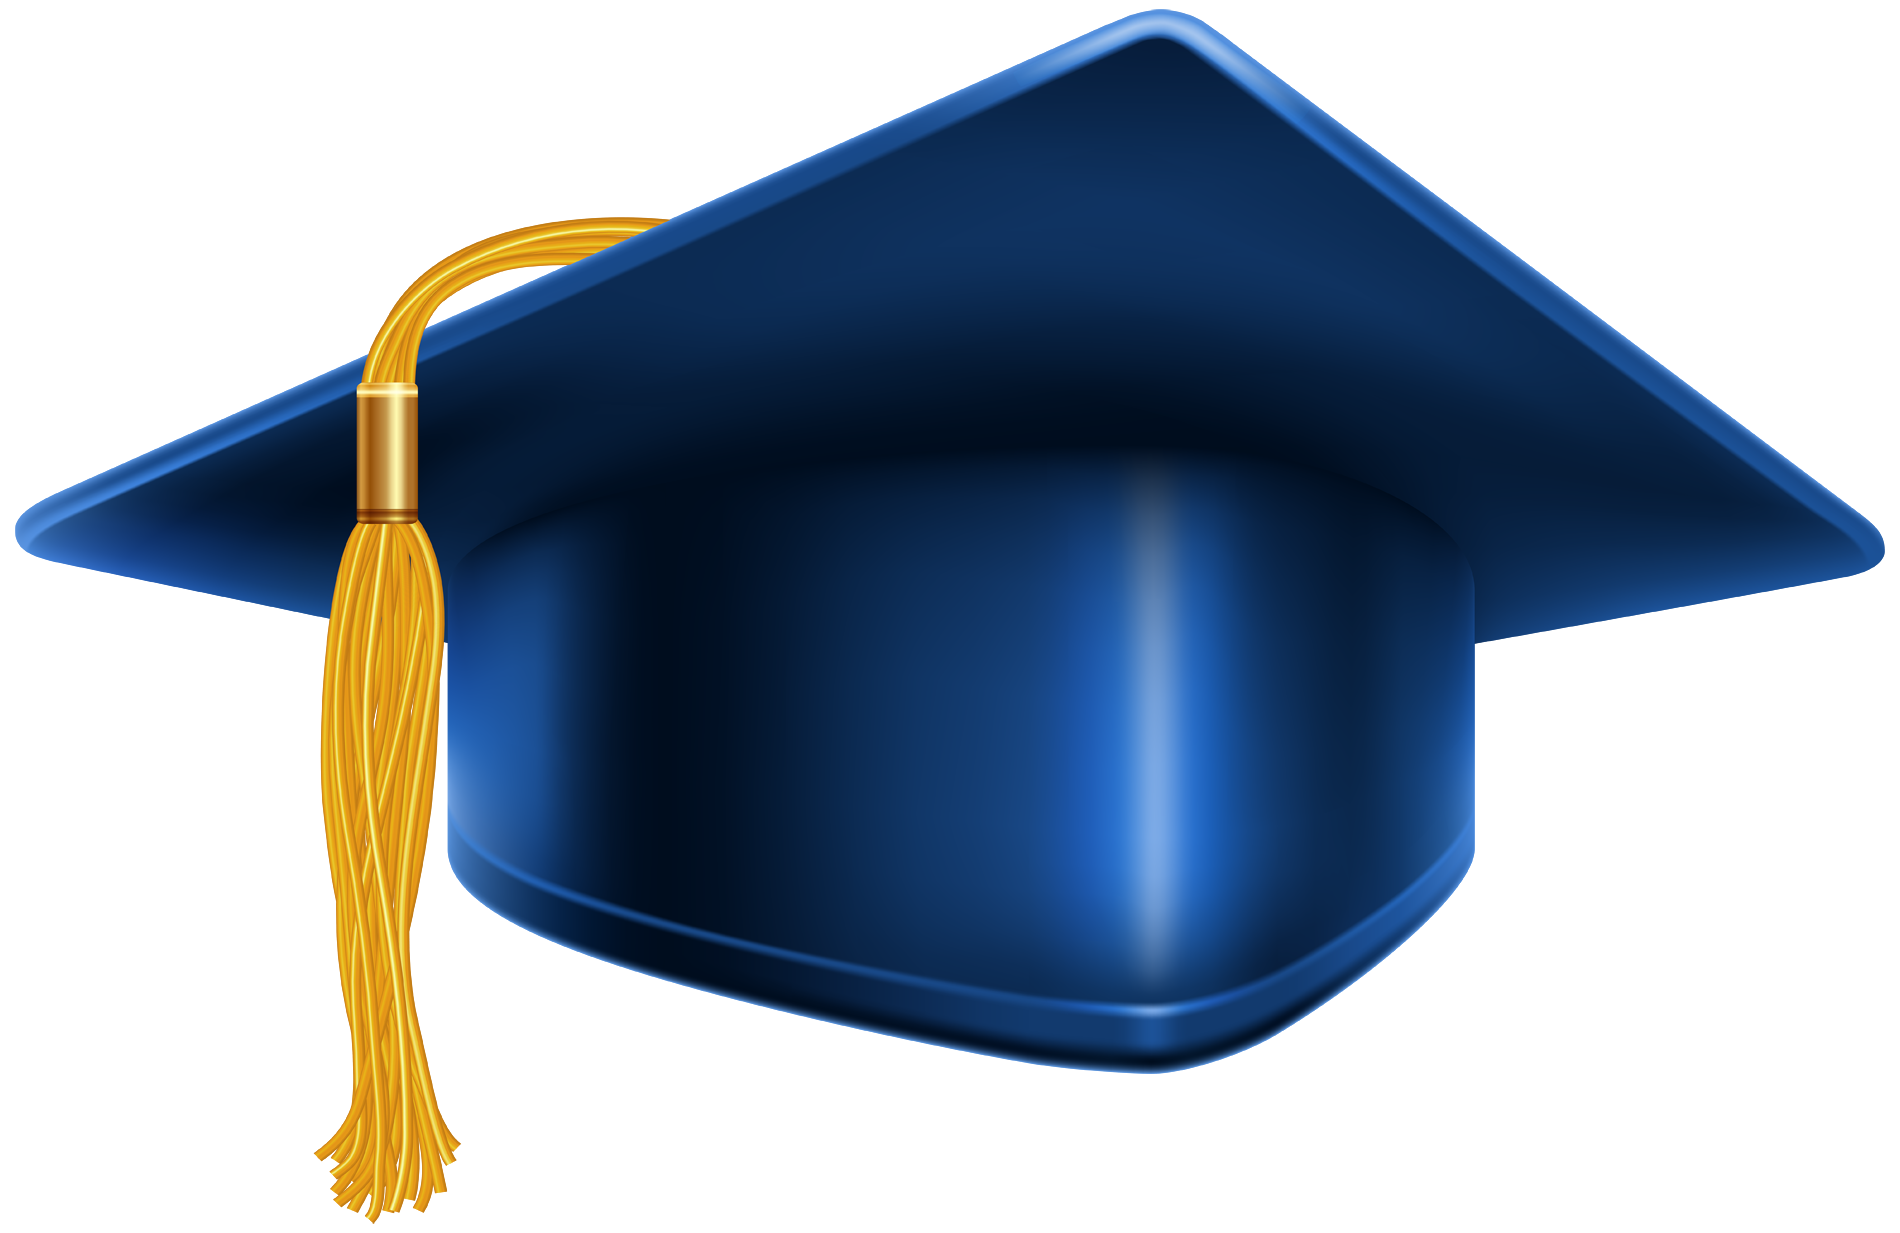 Blue HD Graduation Cap #45641 - Free Icons And PNG Backgrounds